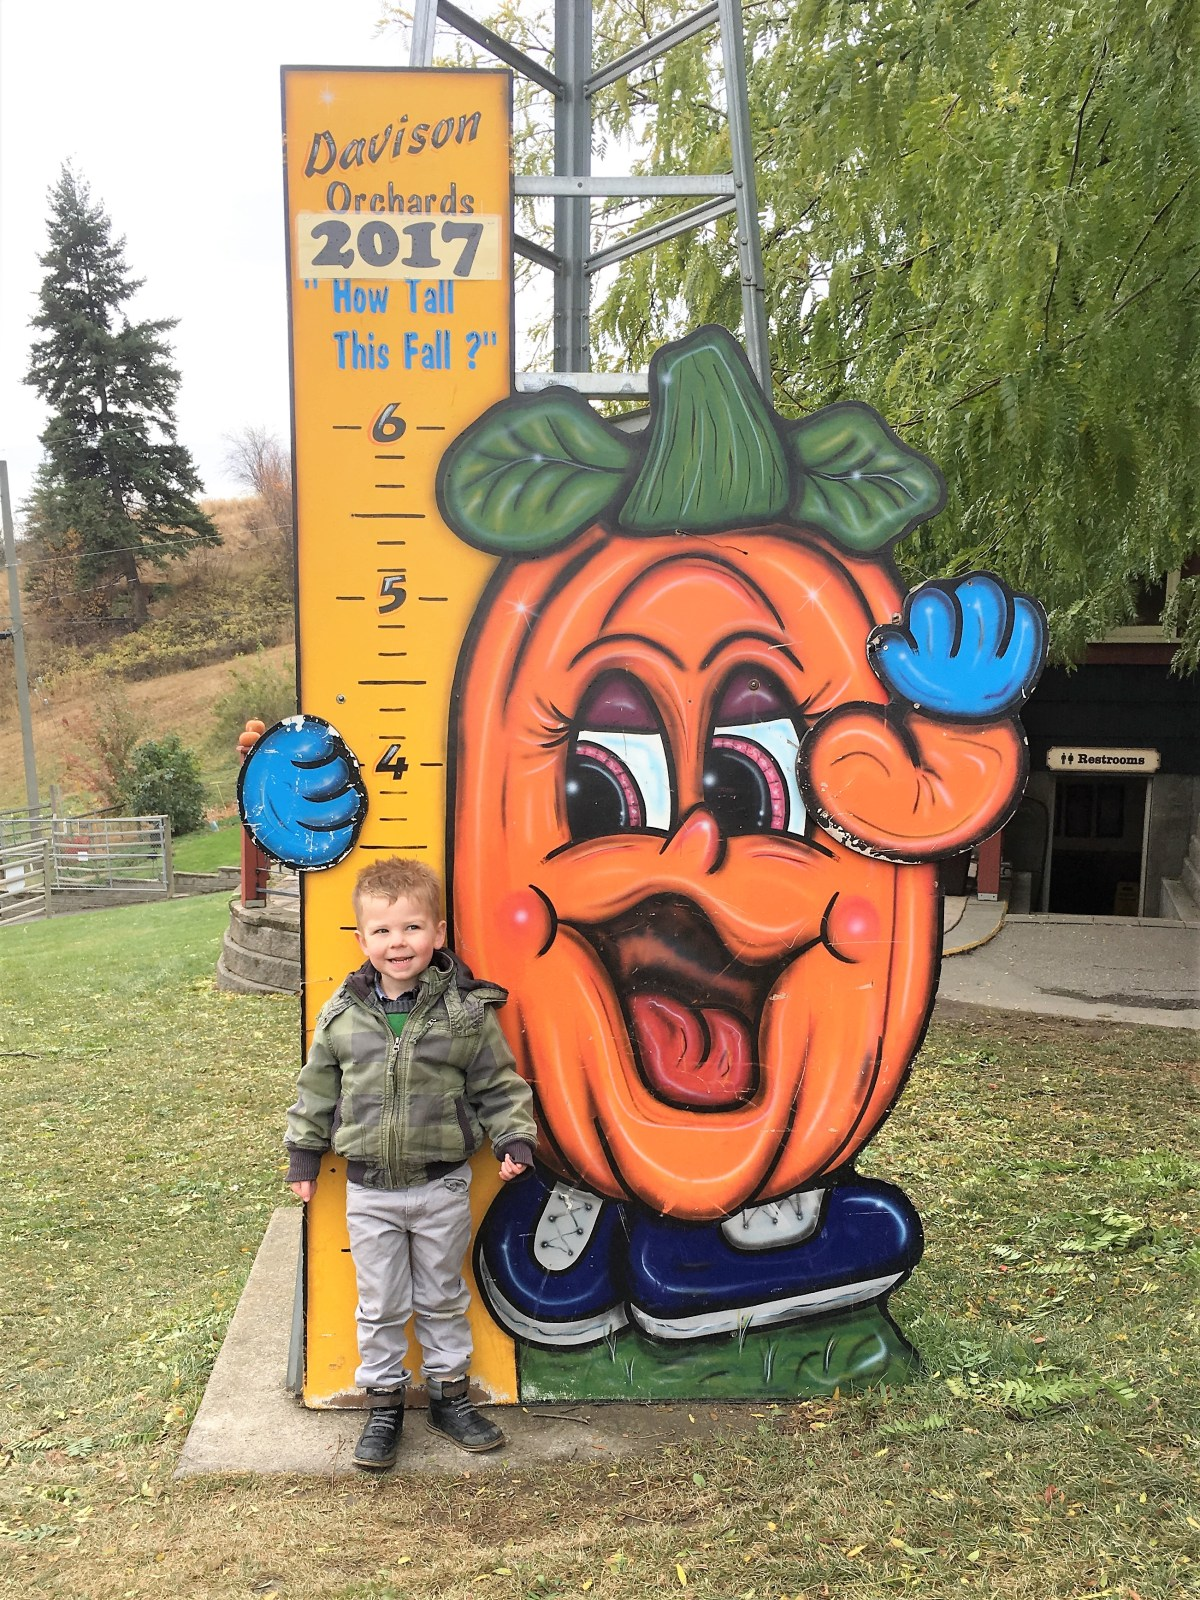 Davidson Orchard Adventure - how tall this fall?